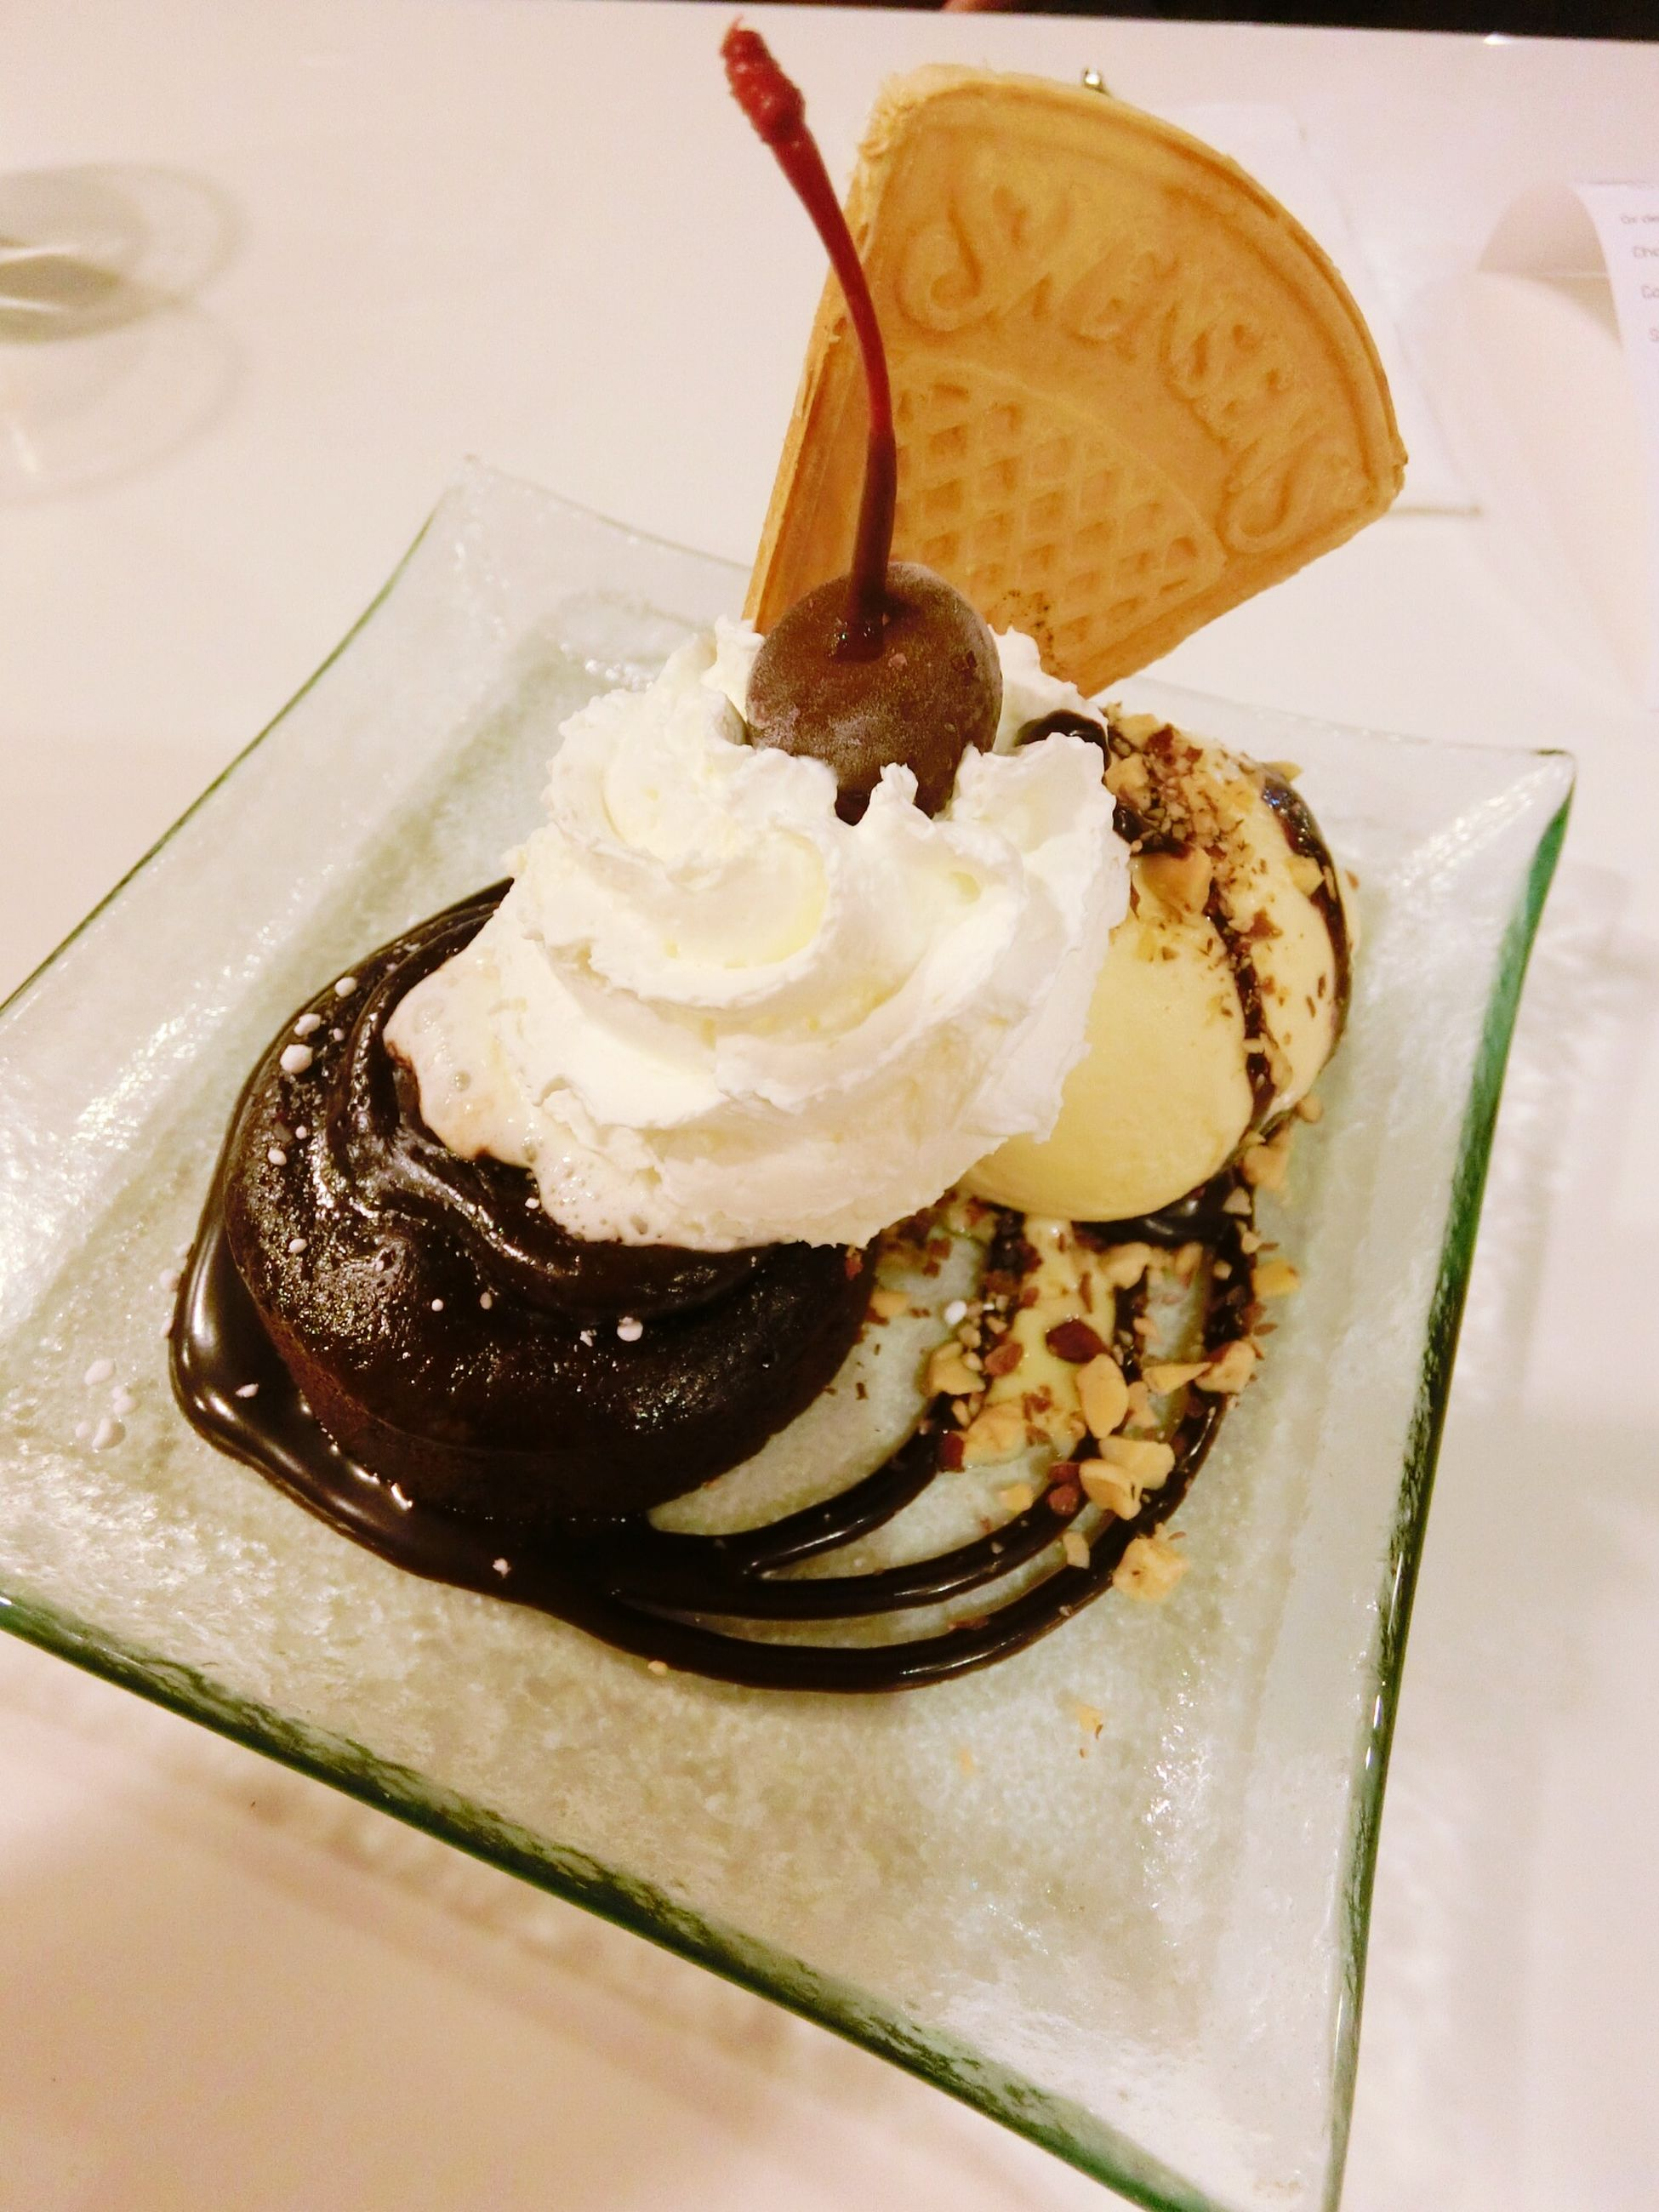 food and drink, food, freshness, indoors, sweet food, dessert, ready-to-eat, indulgence, still life, plate, unhealthy eating, cake, temptation, close-up, table, serving size, high angle view, chocolate, ice cream, fork